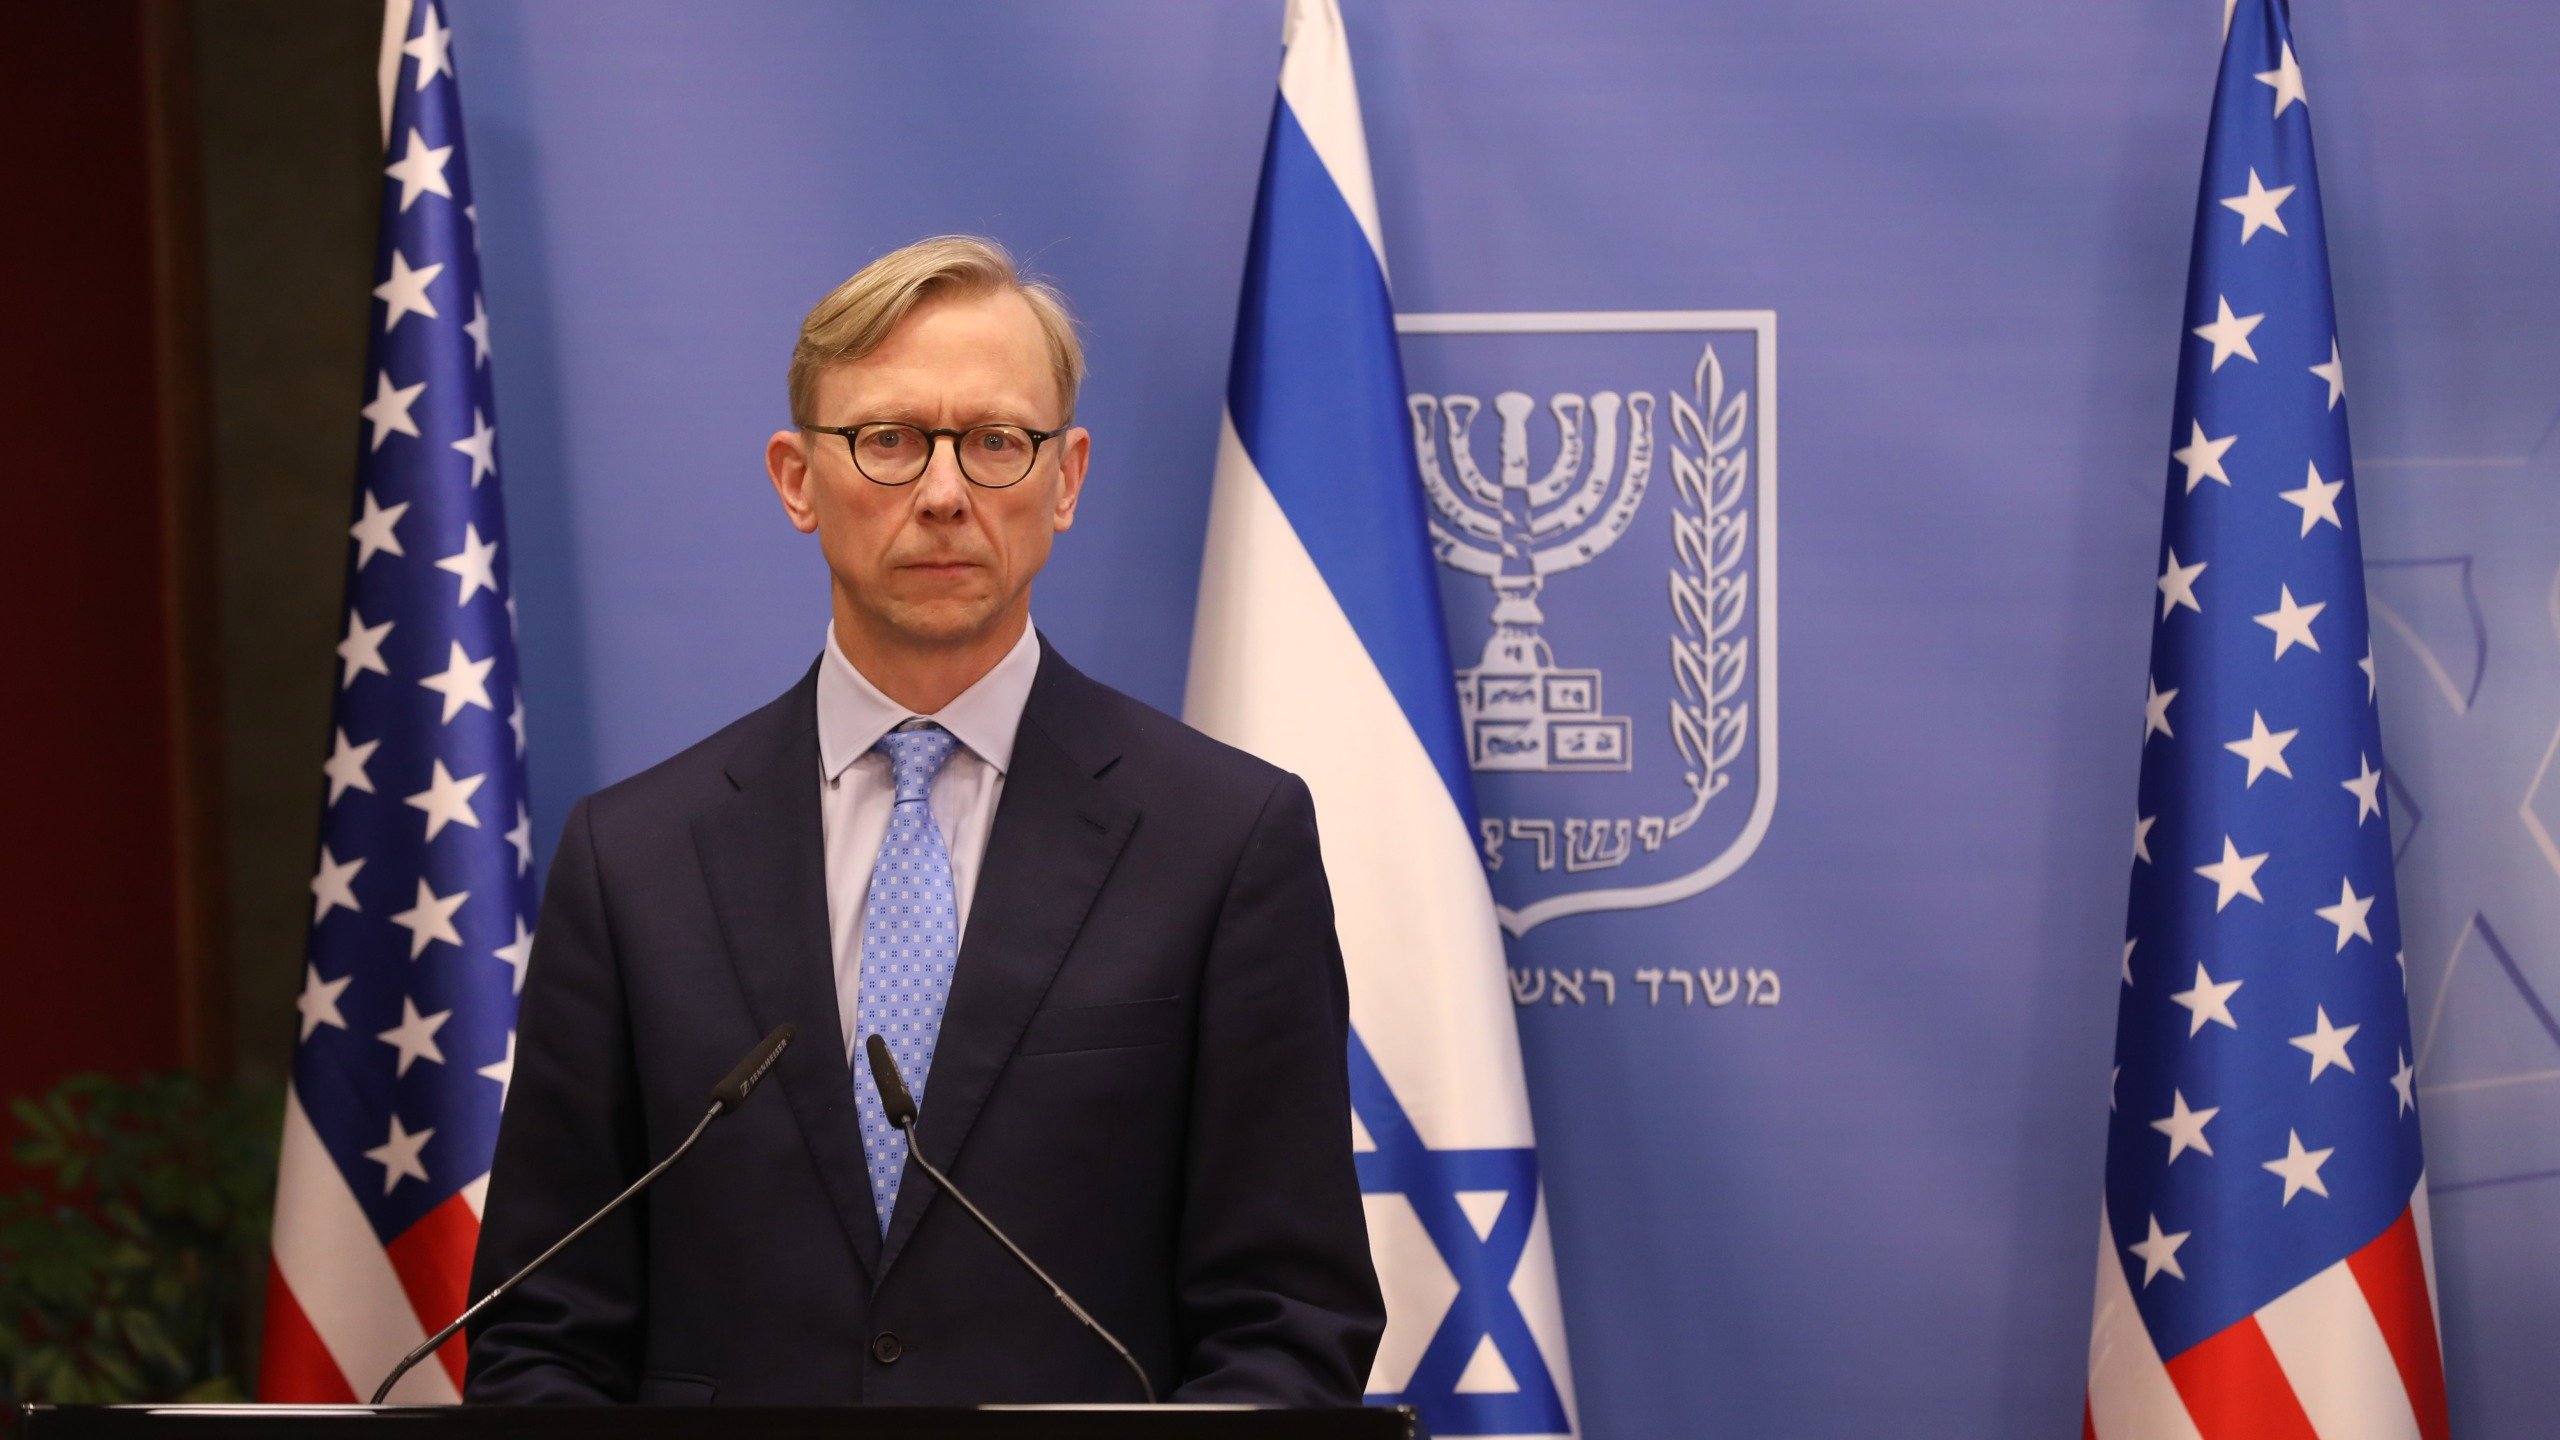 U.S. special representative for Iran, Brian Hook, pauses during a press conference with the Israeli prime minister in Jerusalem on June 30, 2020. (ABIR SULTAN / POOL / AFP via Getty Images)